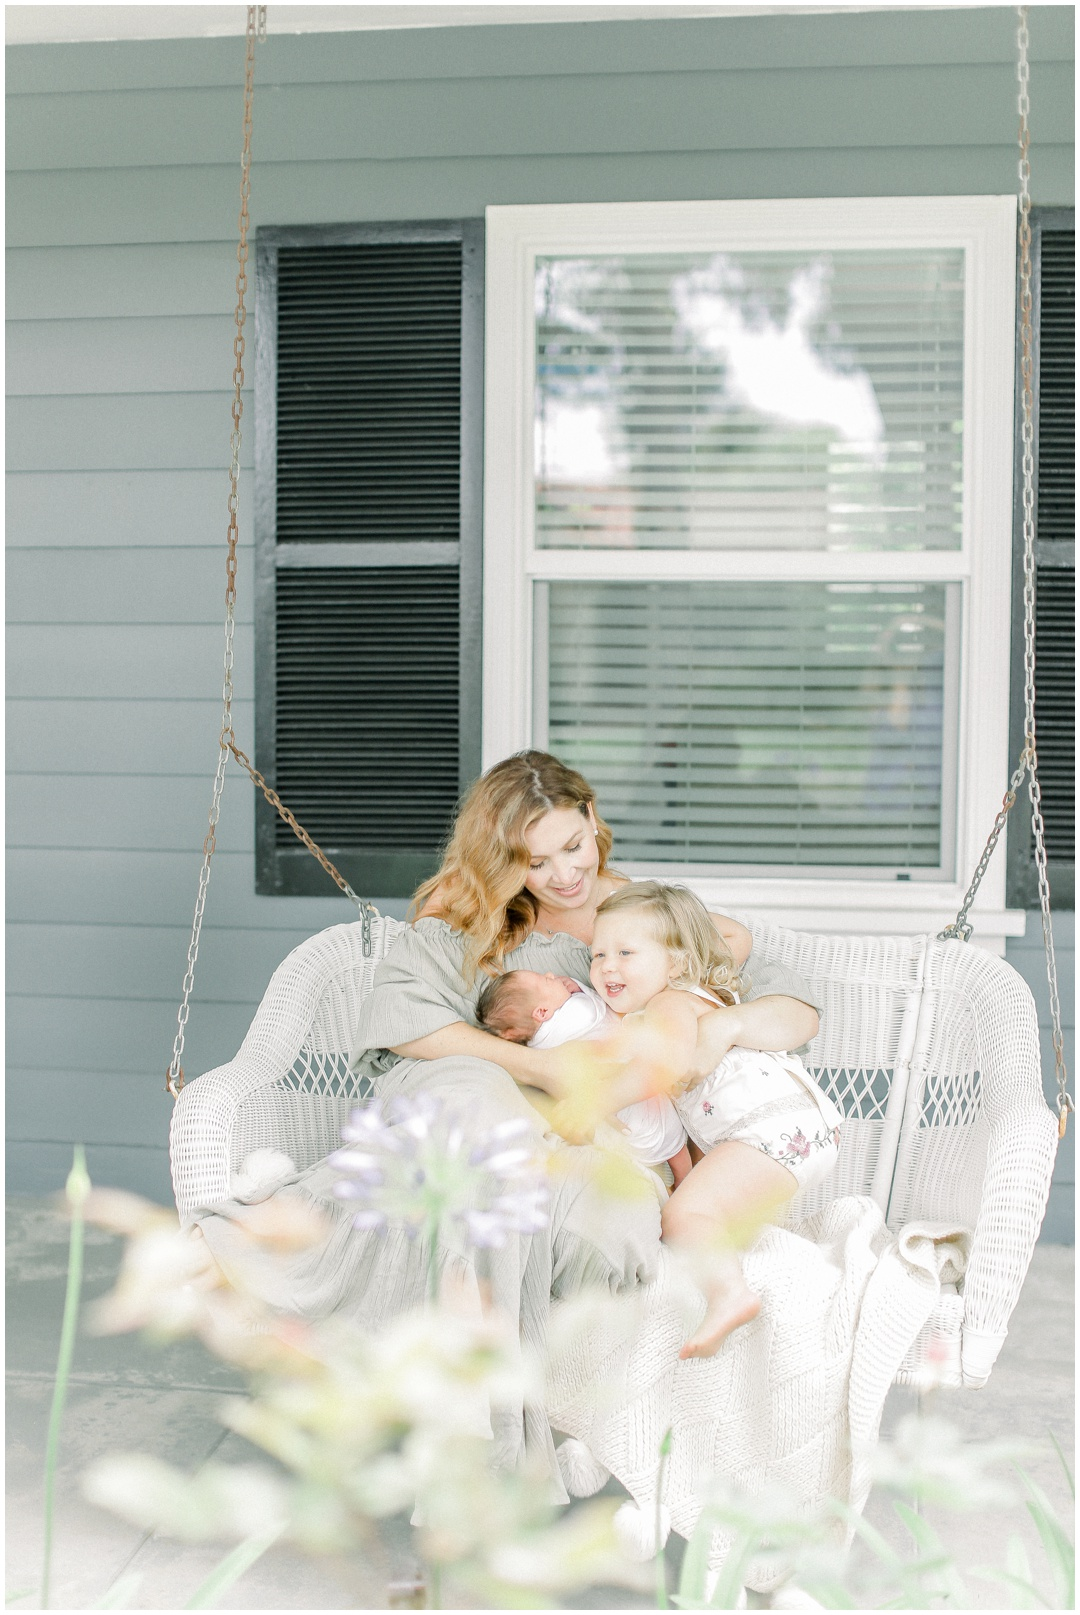 Newport_Beach_Newborn_Light_Airy_Natural_Photographer_Newport_Beach_Photographer_Orange_County_Family_Photographer_Cori_Kleckner_Photography_Newport_Beach_Photographer_Blaire_Baker_Brett_Baker_Caroline_Baker__3943.jpg